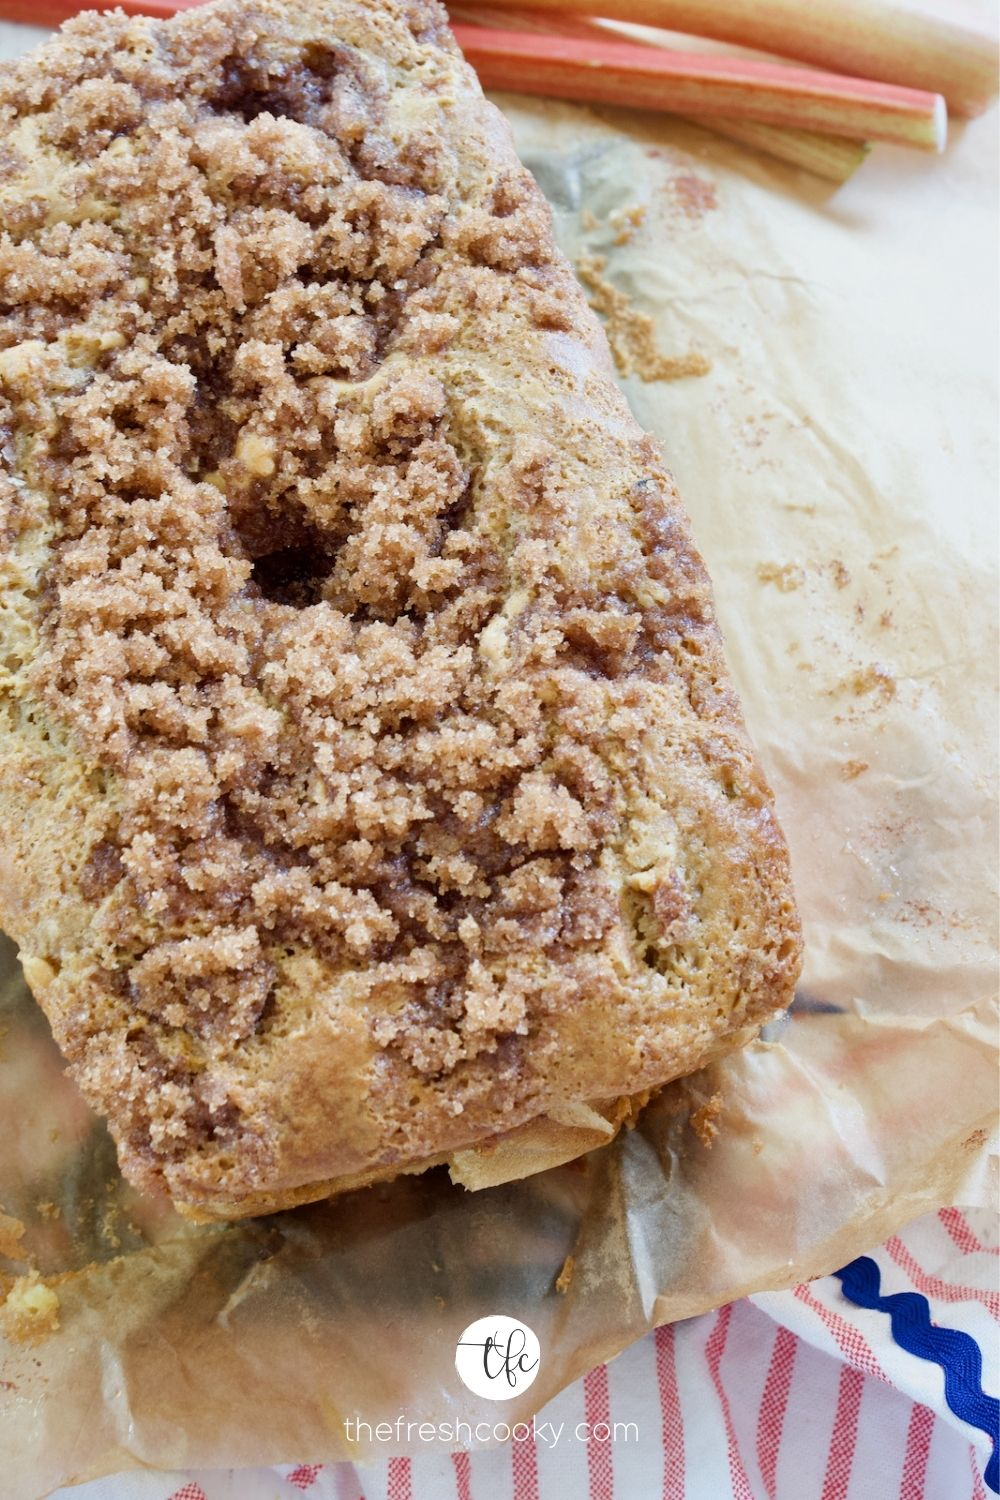 Loaf of Rhubarb bread with cinnamon crunch streusel topping sitting on parchment paper with rhubarb stalks behind.